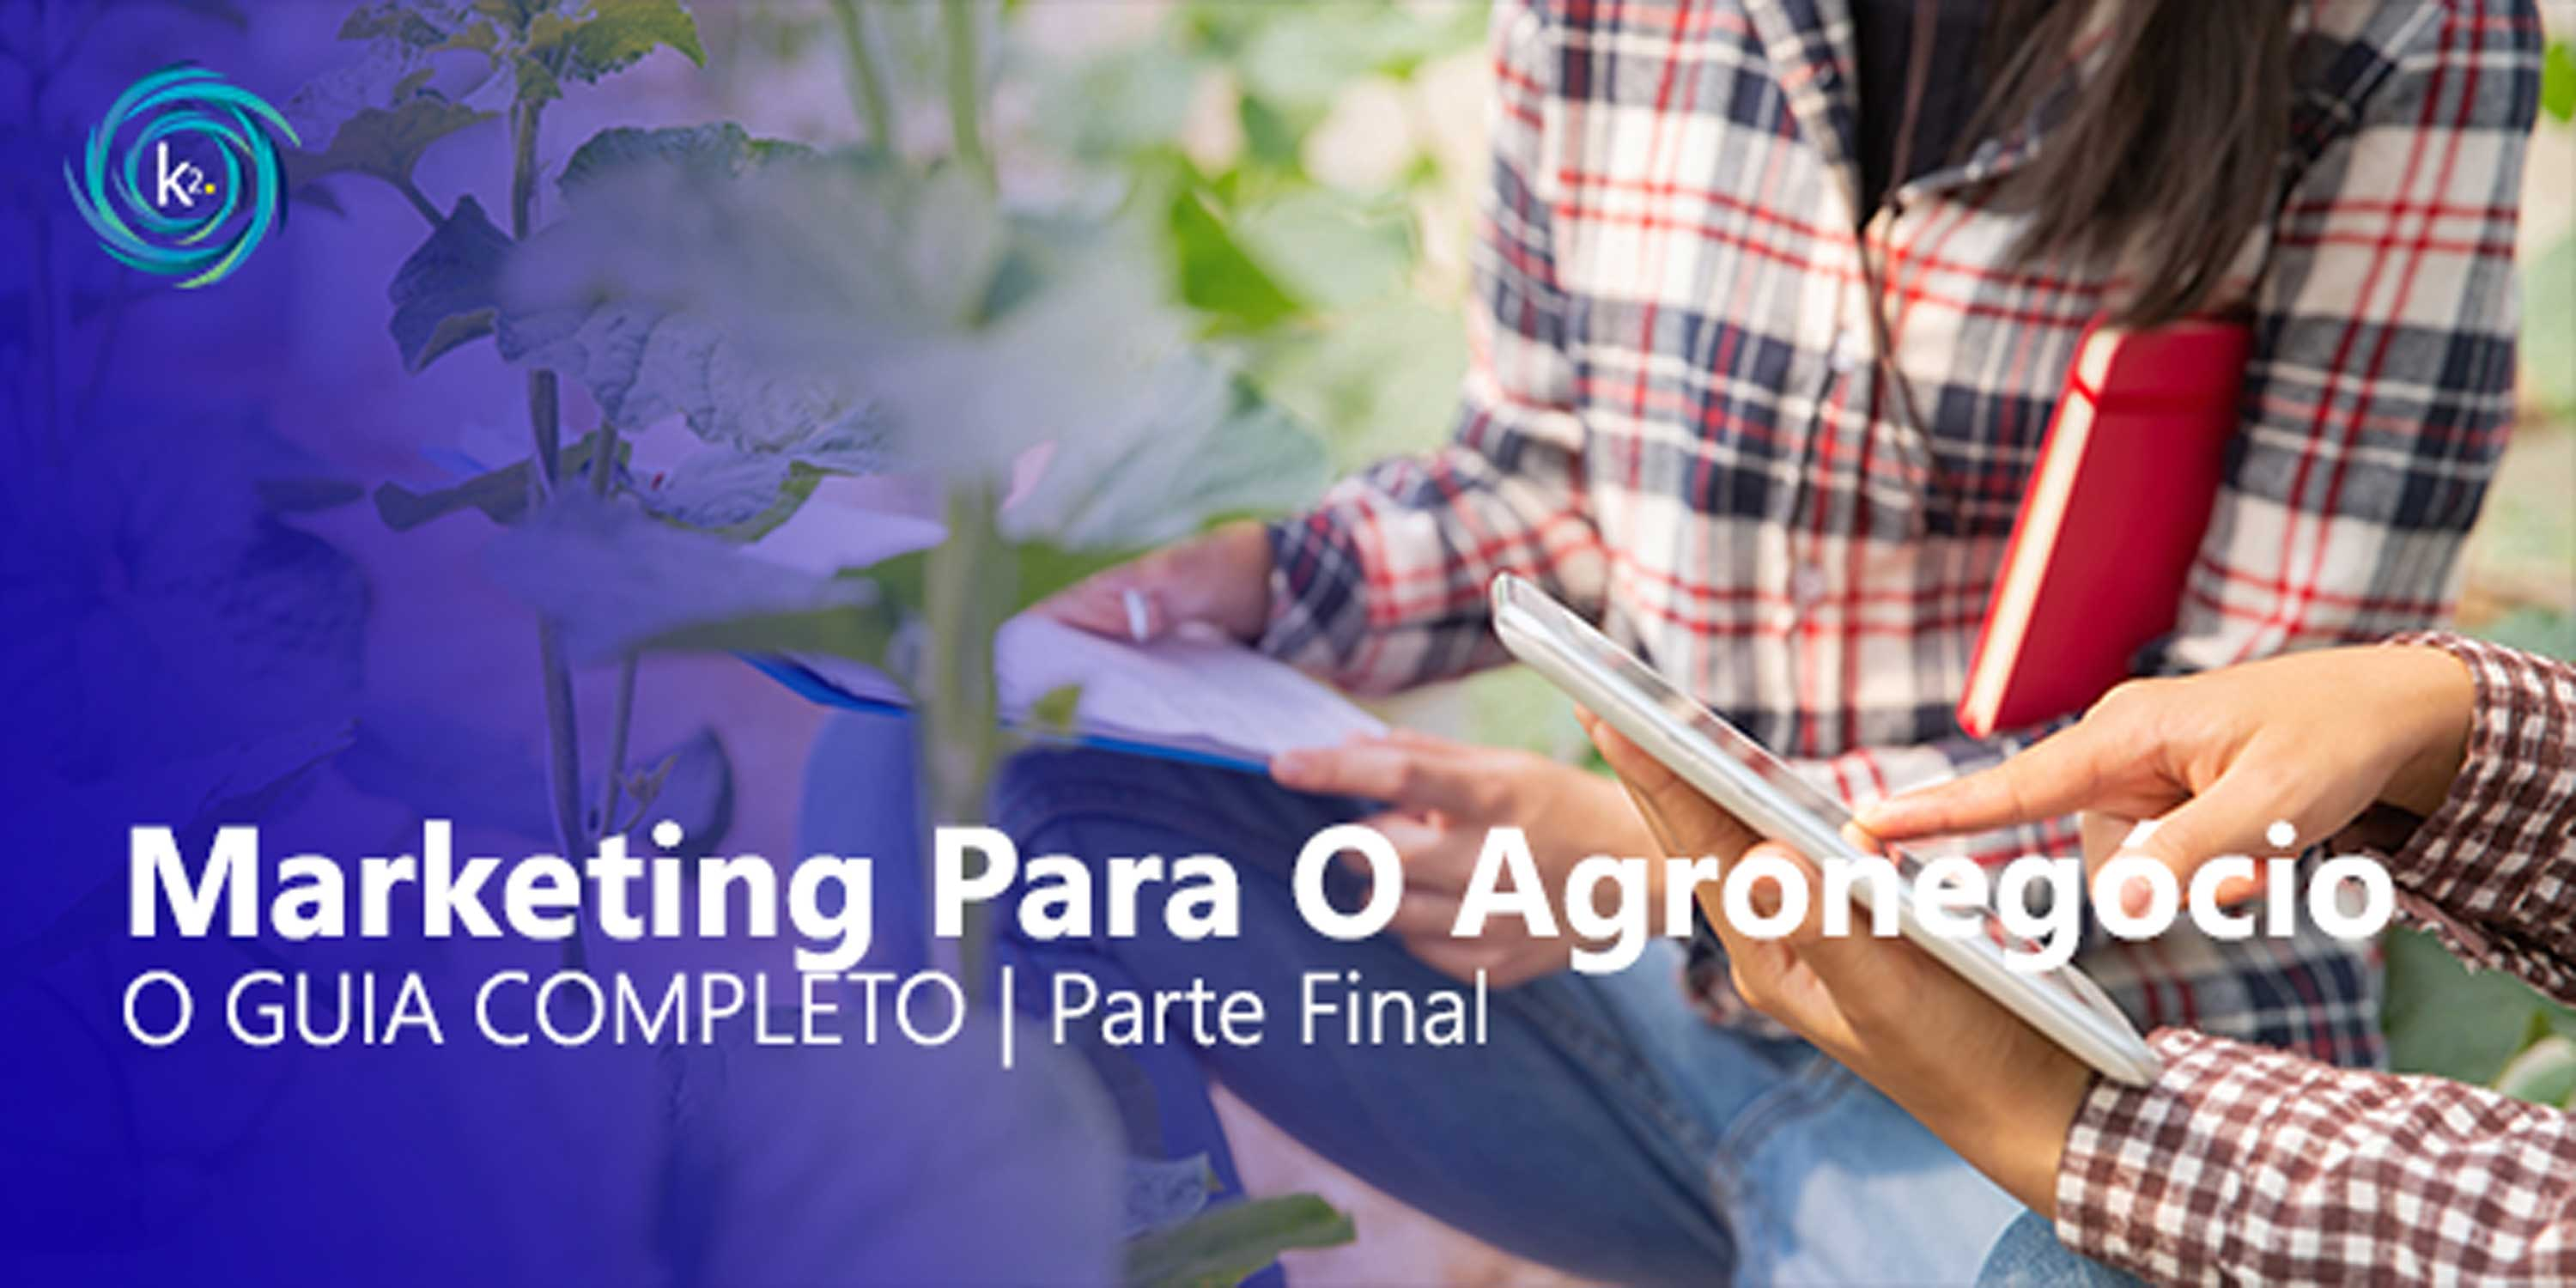 marketing para o agronegócio: parte final